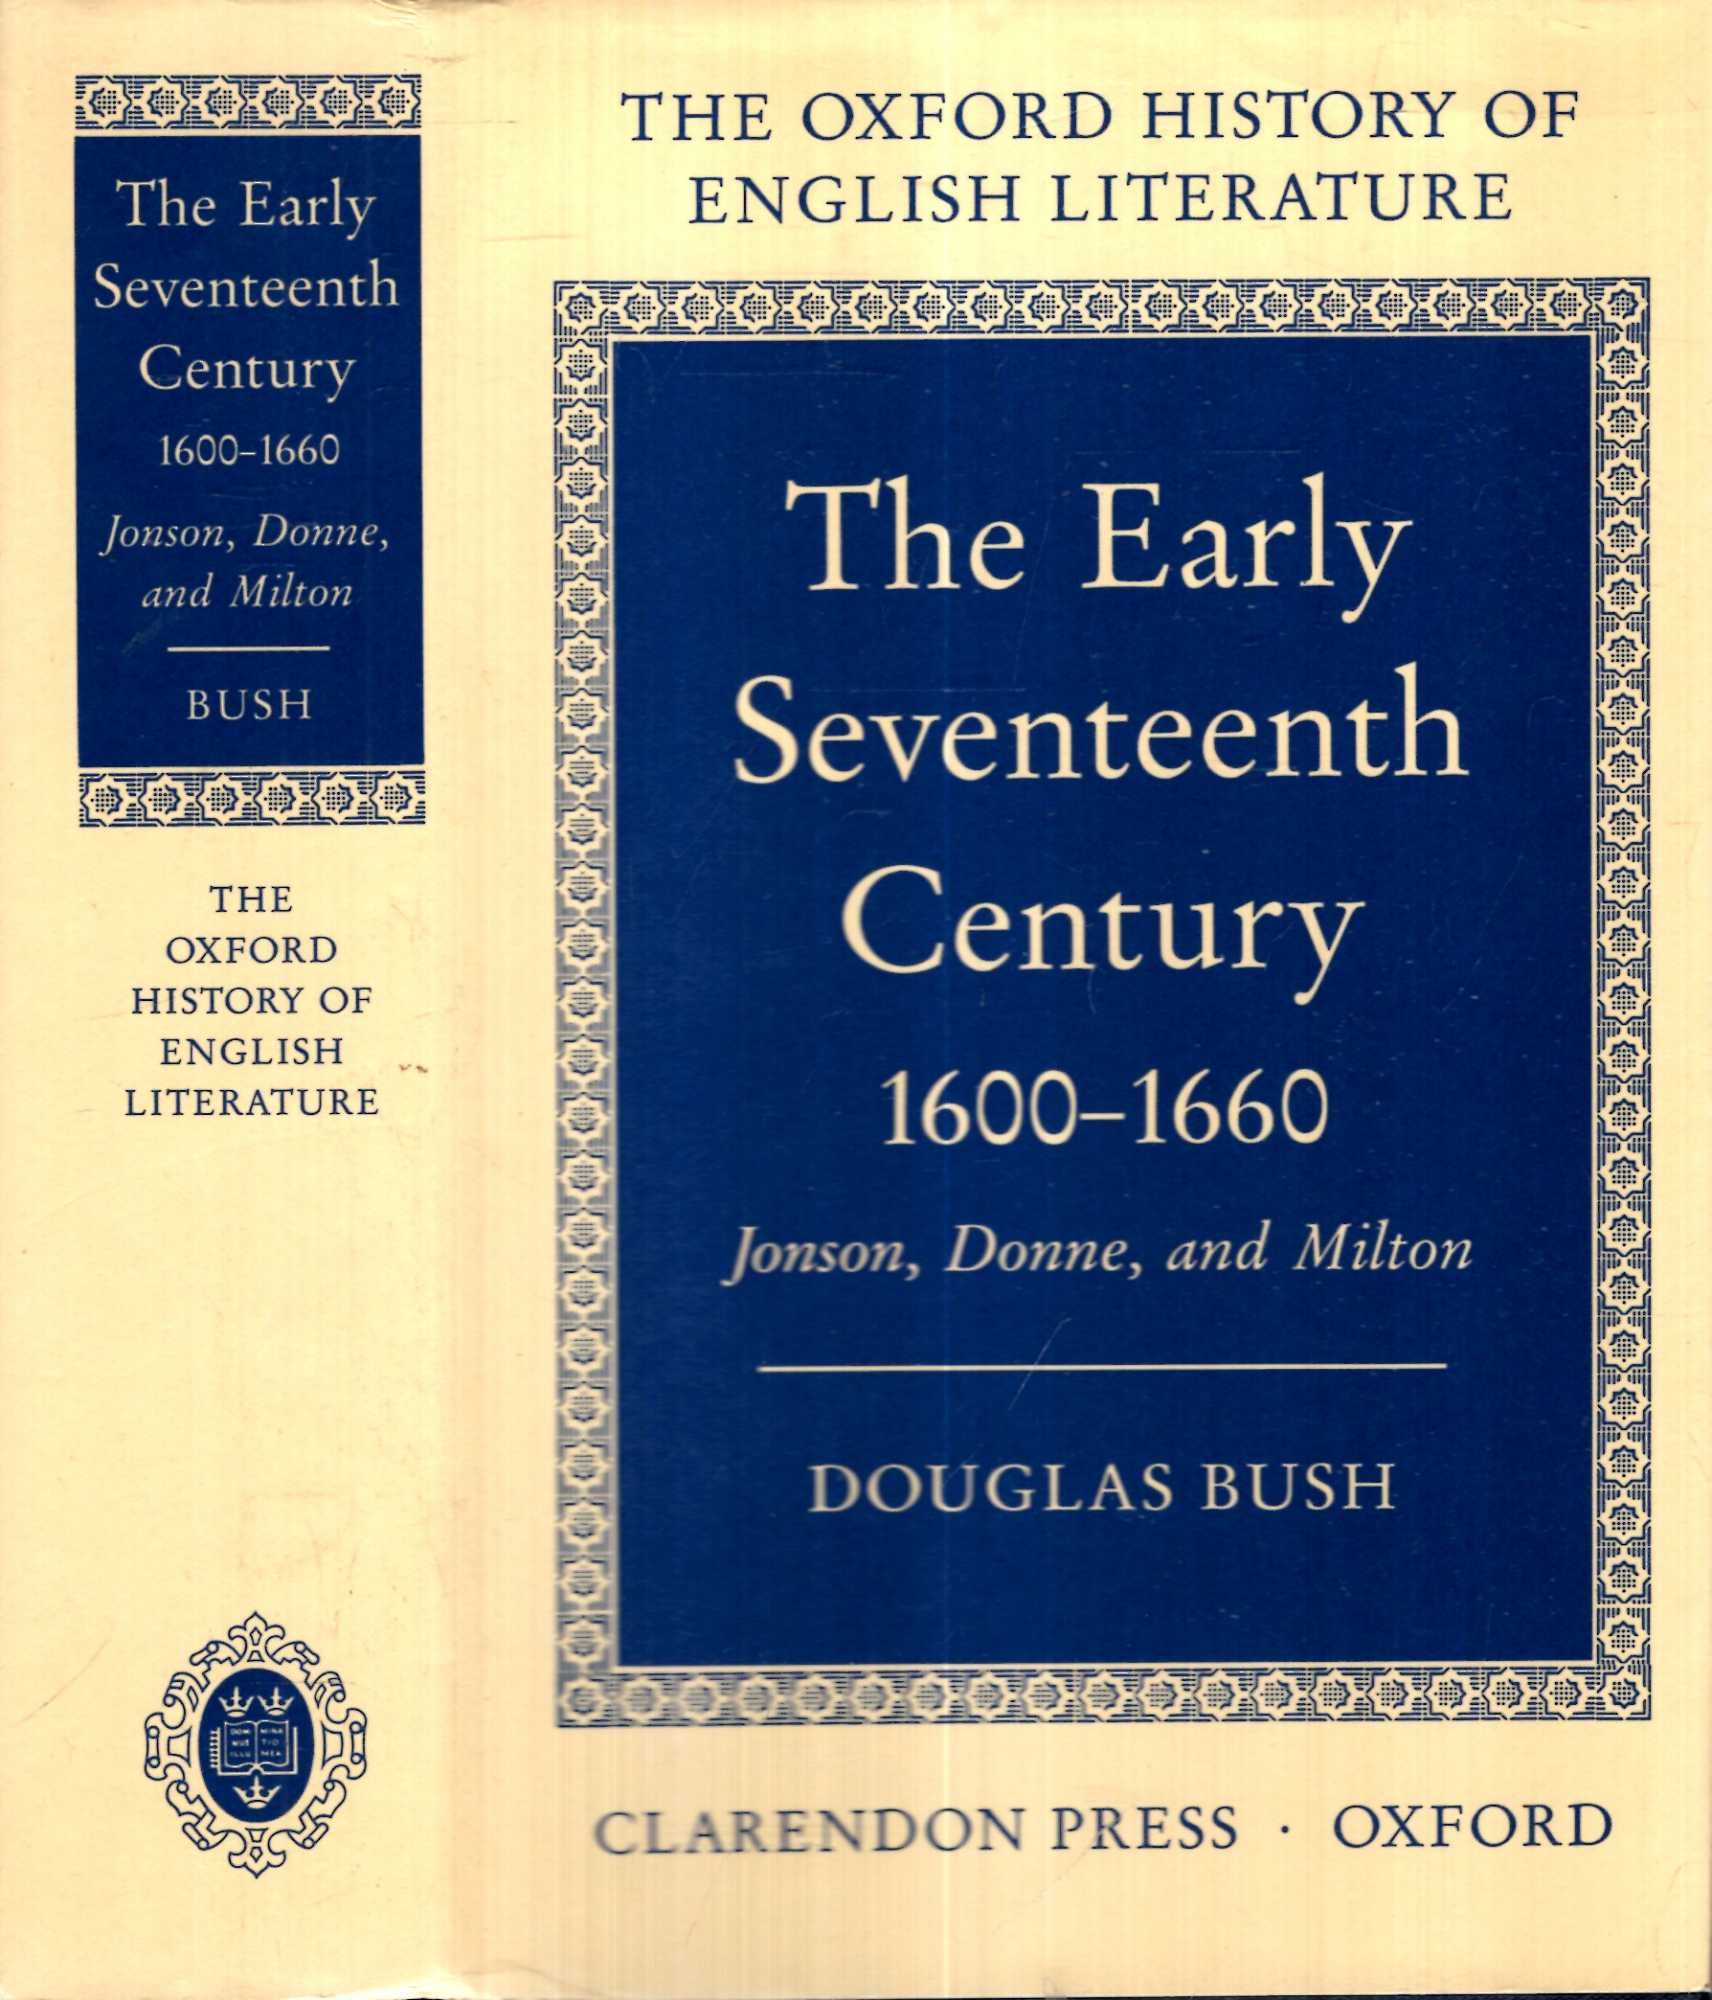 Image for The Oxford History of English literature : The Early Seventeenth Century 1600-1660: Jonson, Donne, and Milton